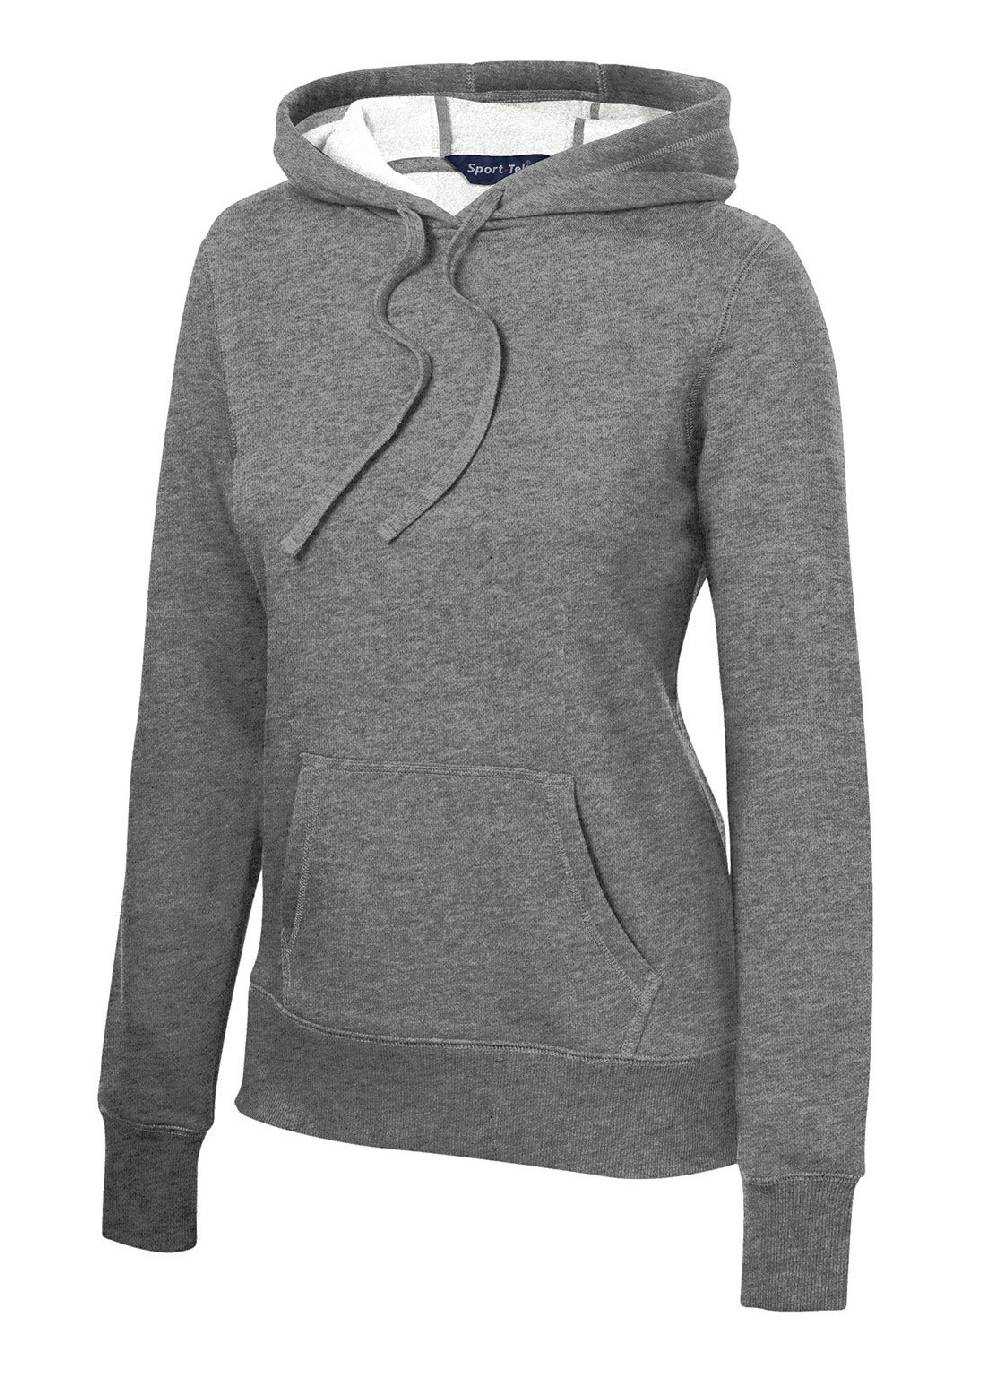 Women S Sport Tek Pullover Sweatshirts So throw in the activewear as you dress into compression shirts, hoodies, leggings, and yoga pants and follow these quarantine activewear trends while on lockdown. women s sport tek pullover hooded sweatshirt